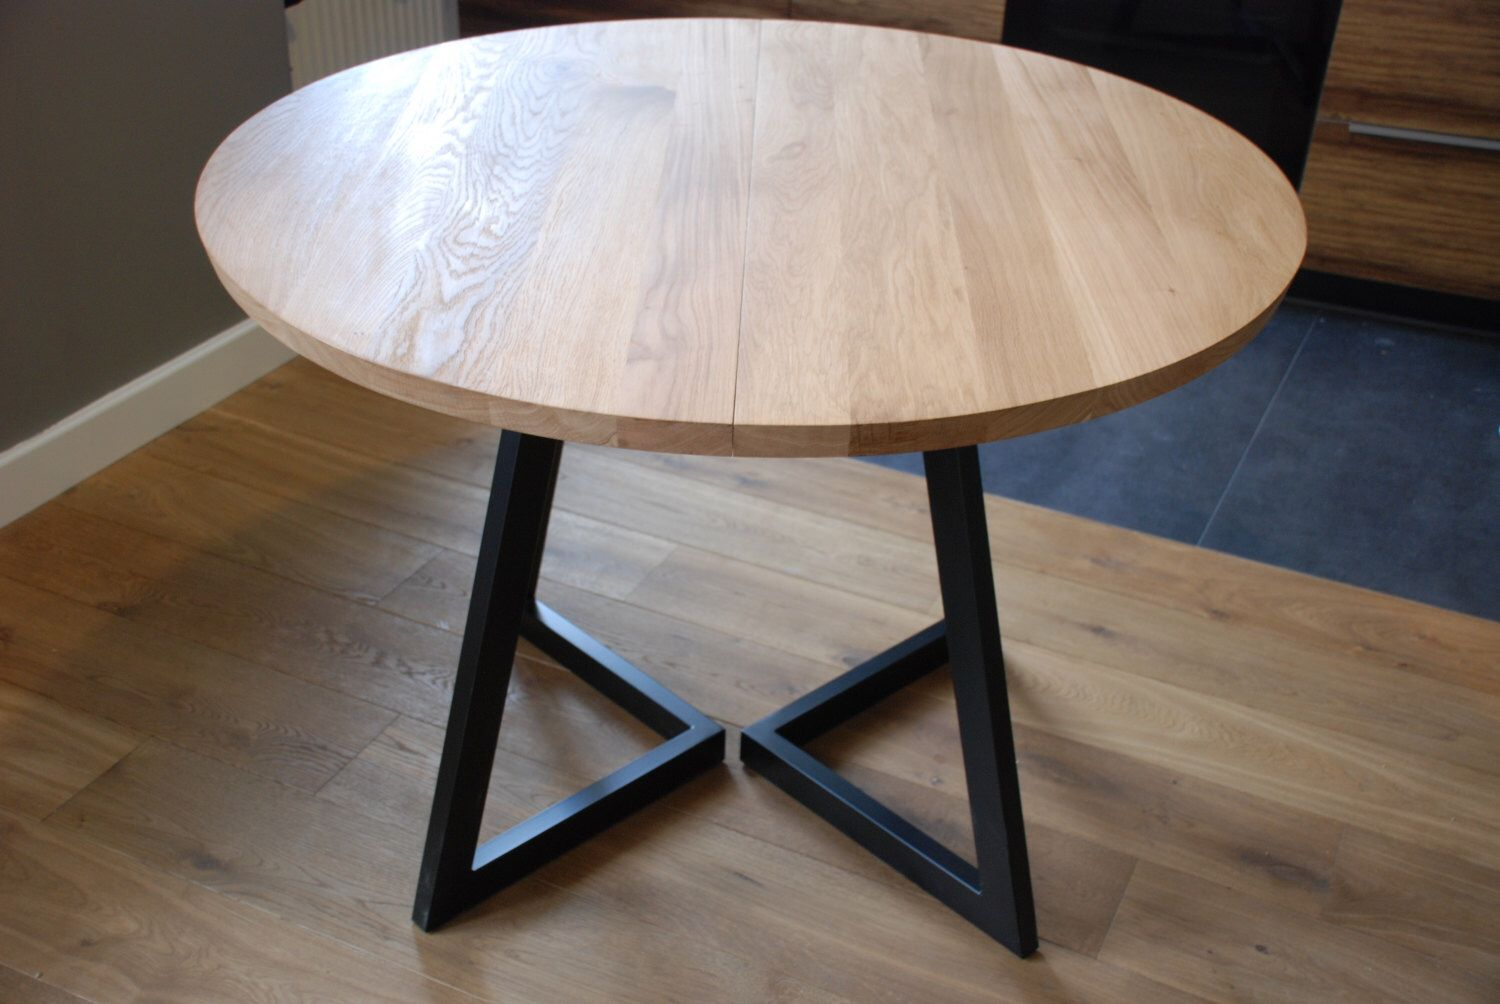 Extendable Round Table Modern Design Steel And Timber Dining Table Oak Dining Table Round Dining Table